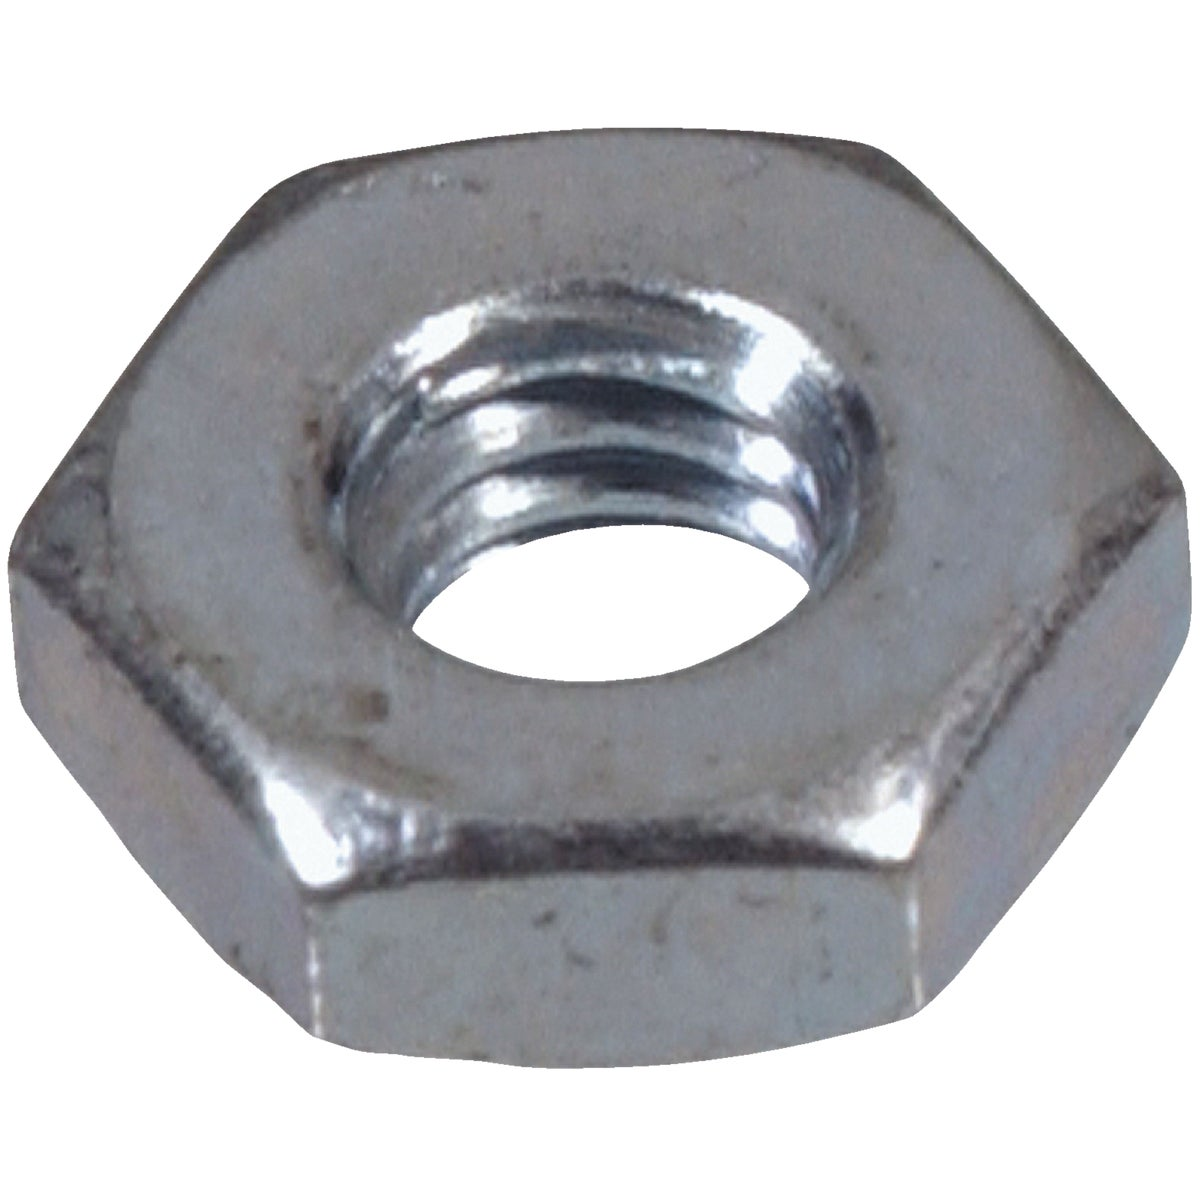 1/4-20 MACH SCREW NUT - 140030 by Hillman Fastener